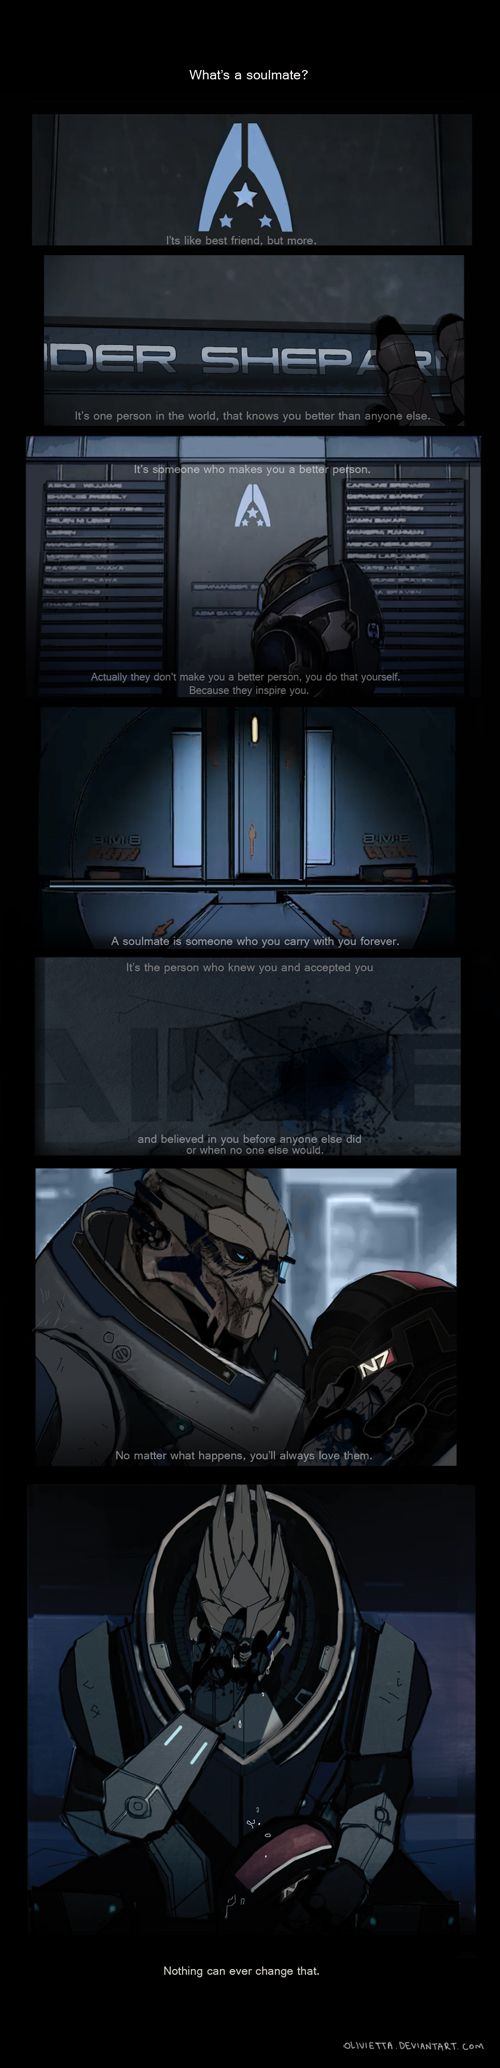 SOULMATE by ~Olivietta on deviantART I don't even ship shep/garrus, but this is beautiful, even from a best friend stand point.